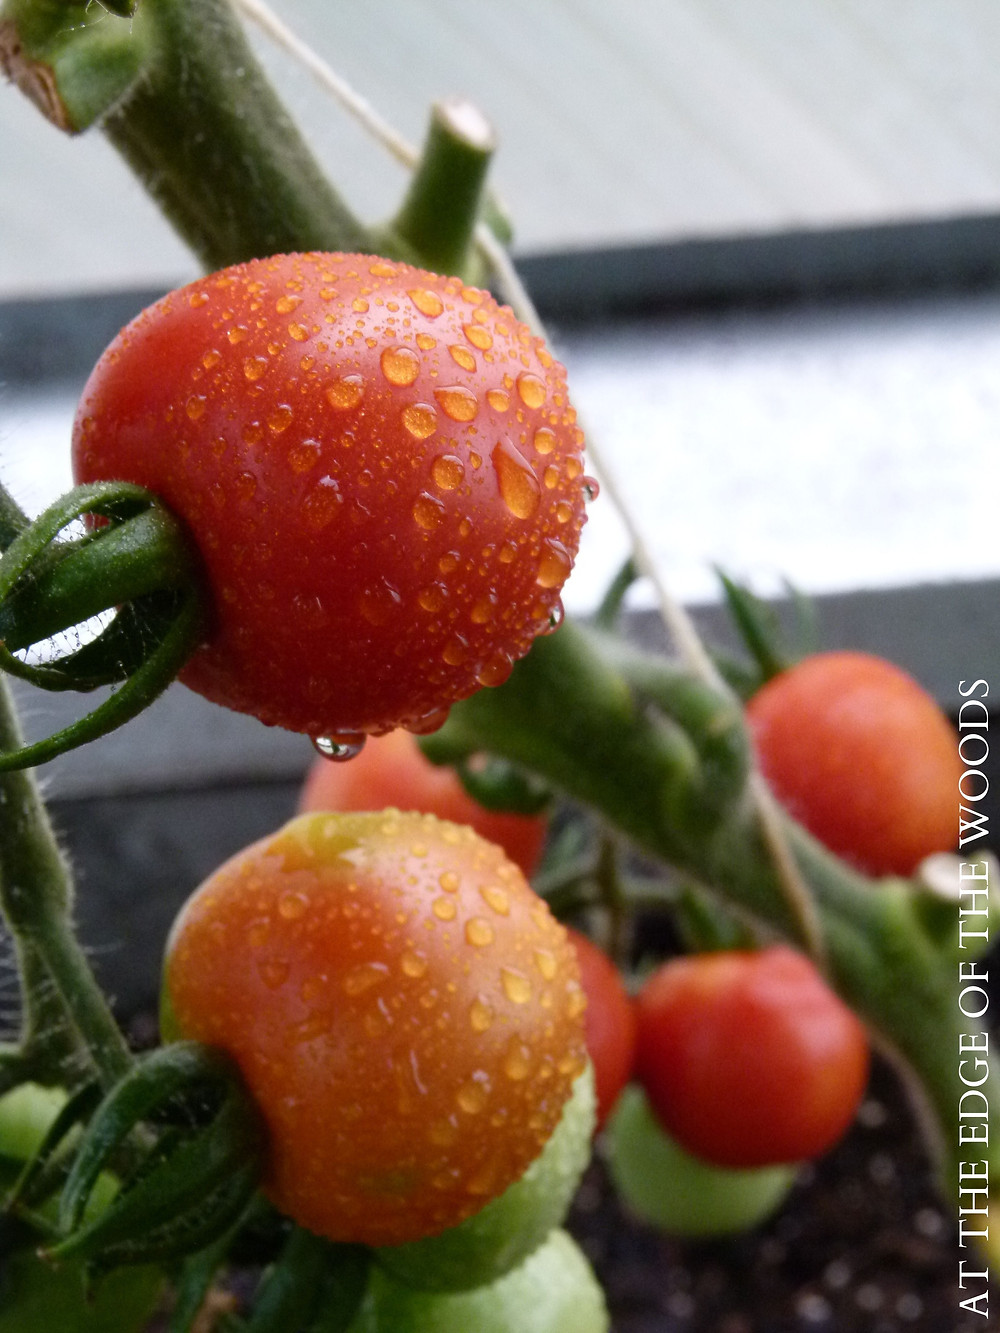 a mist of water keeps the greenhouse tomatoes cool during the August heat